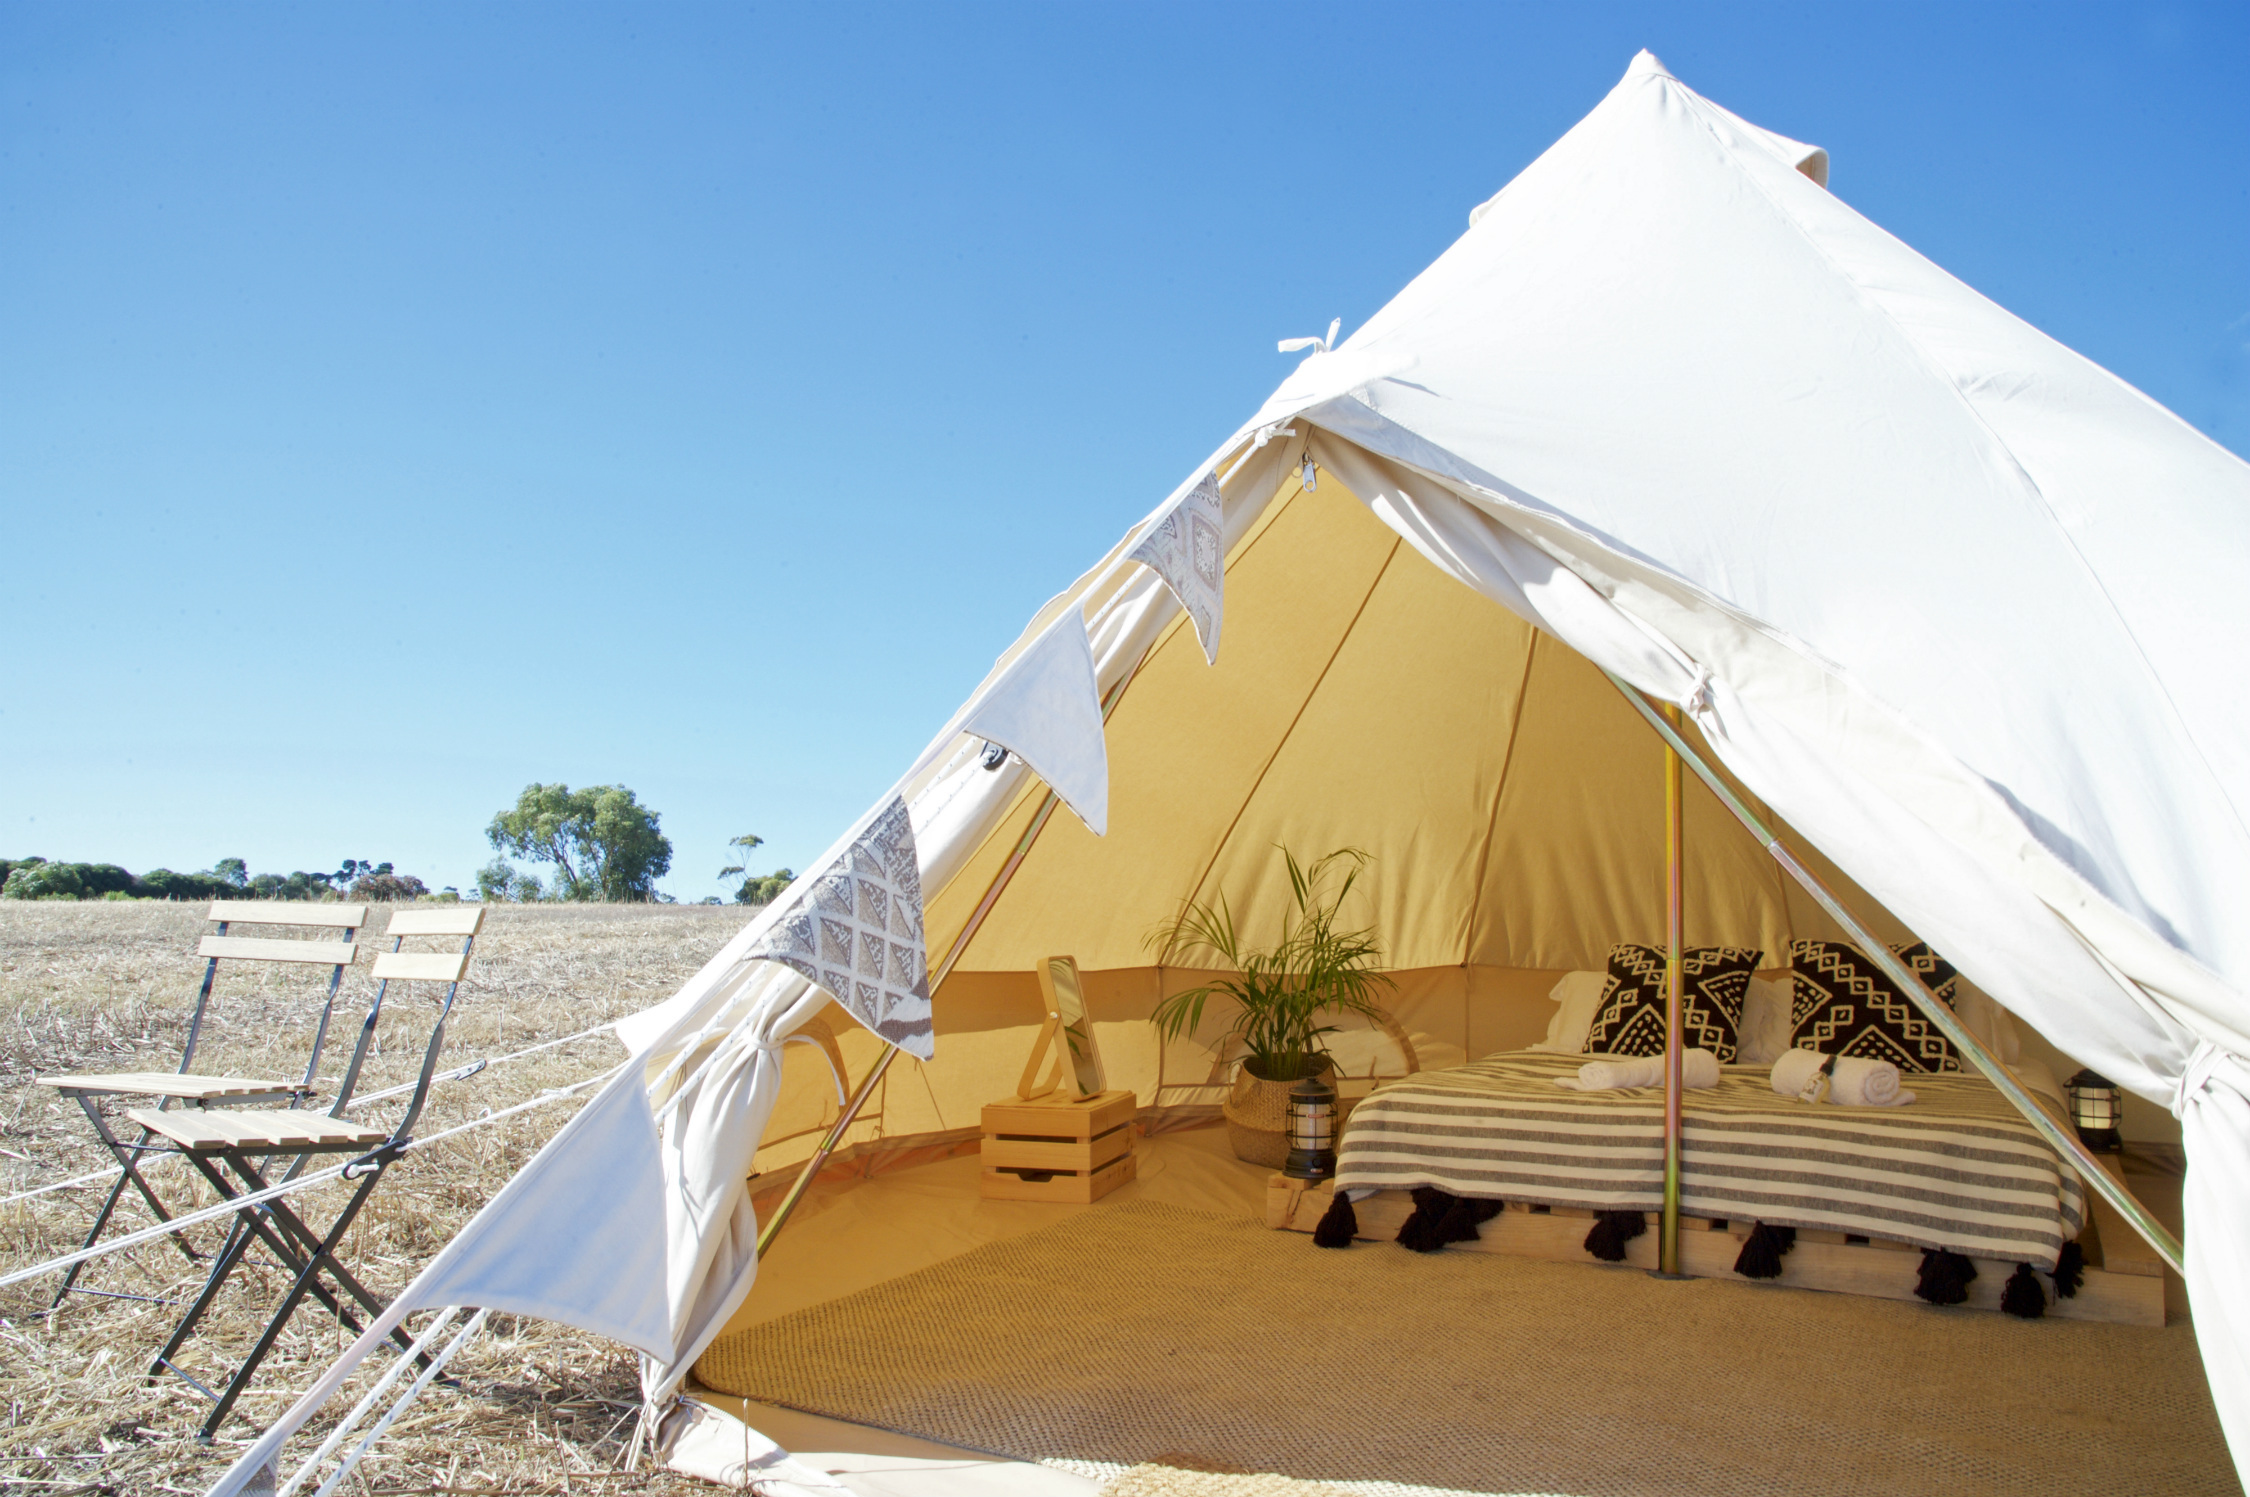 Canvas bell tent with entrance open, showing interior of tent